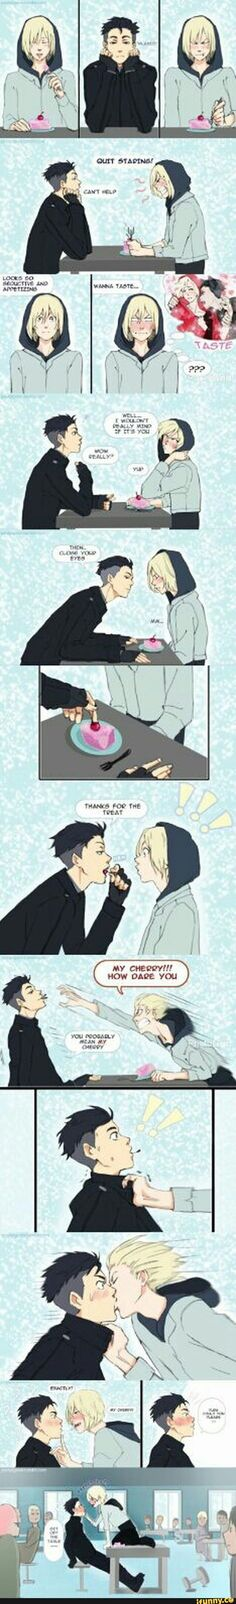 Seems like something Yurio would do xD: